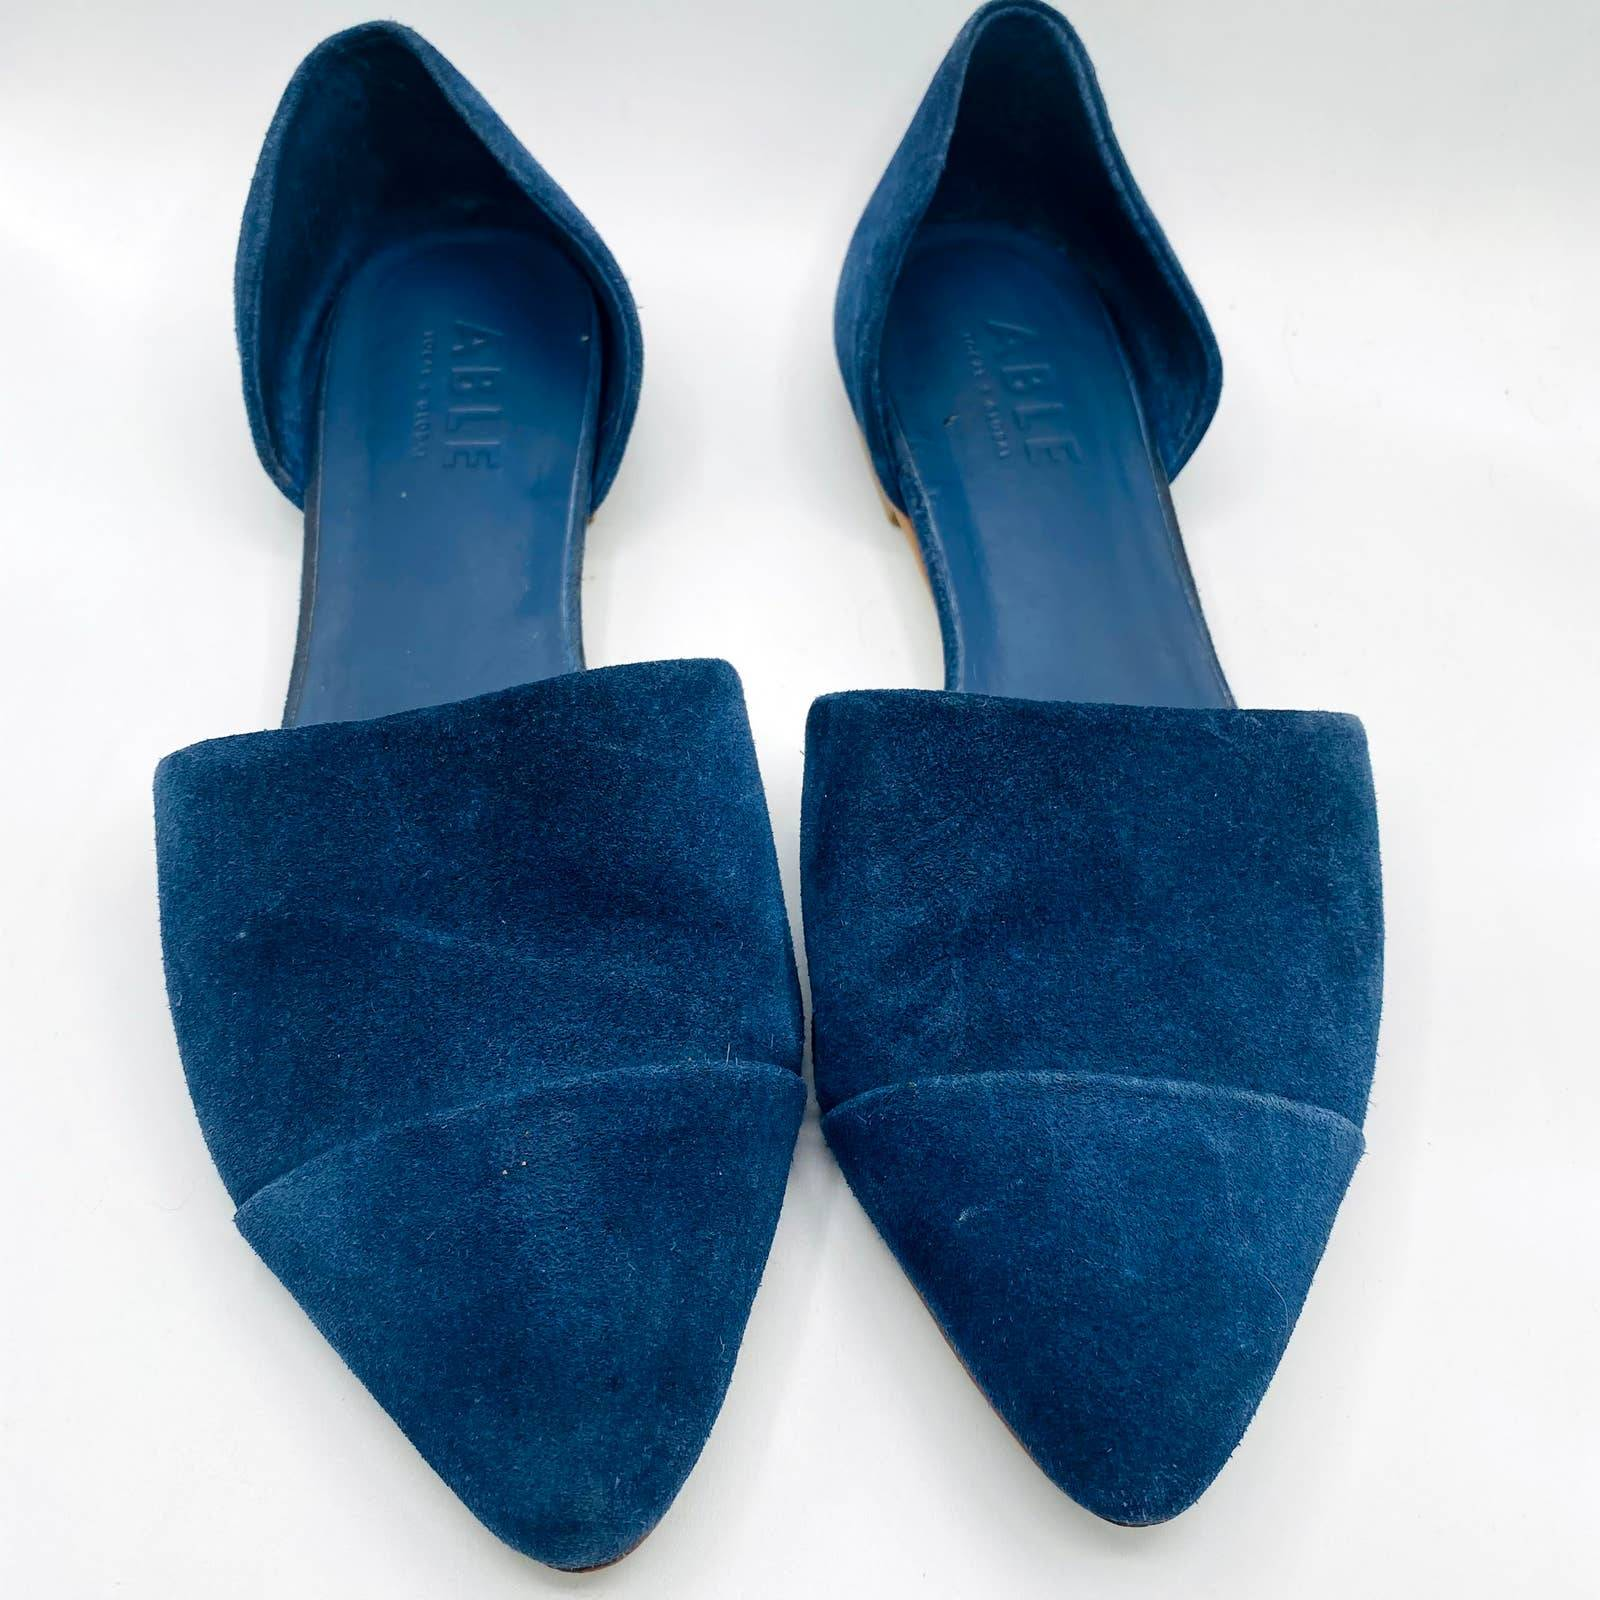 Able Blue Suede D'Orsay Flats Size 9.5